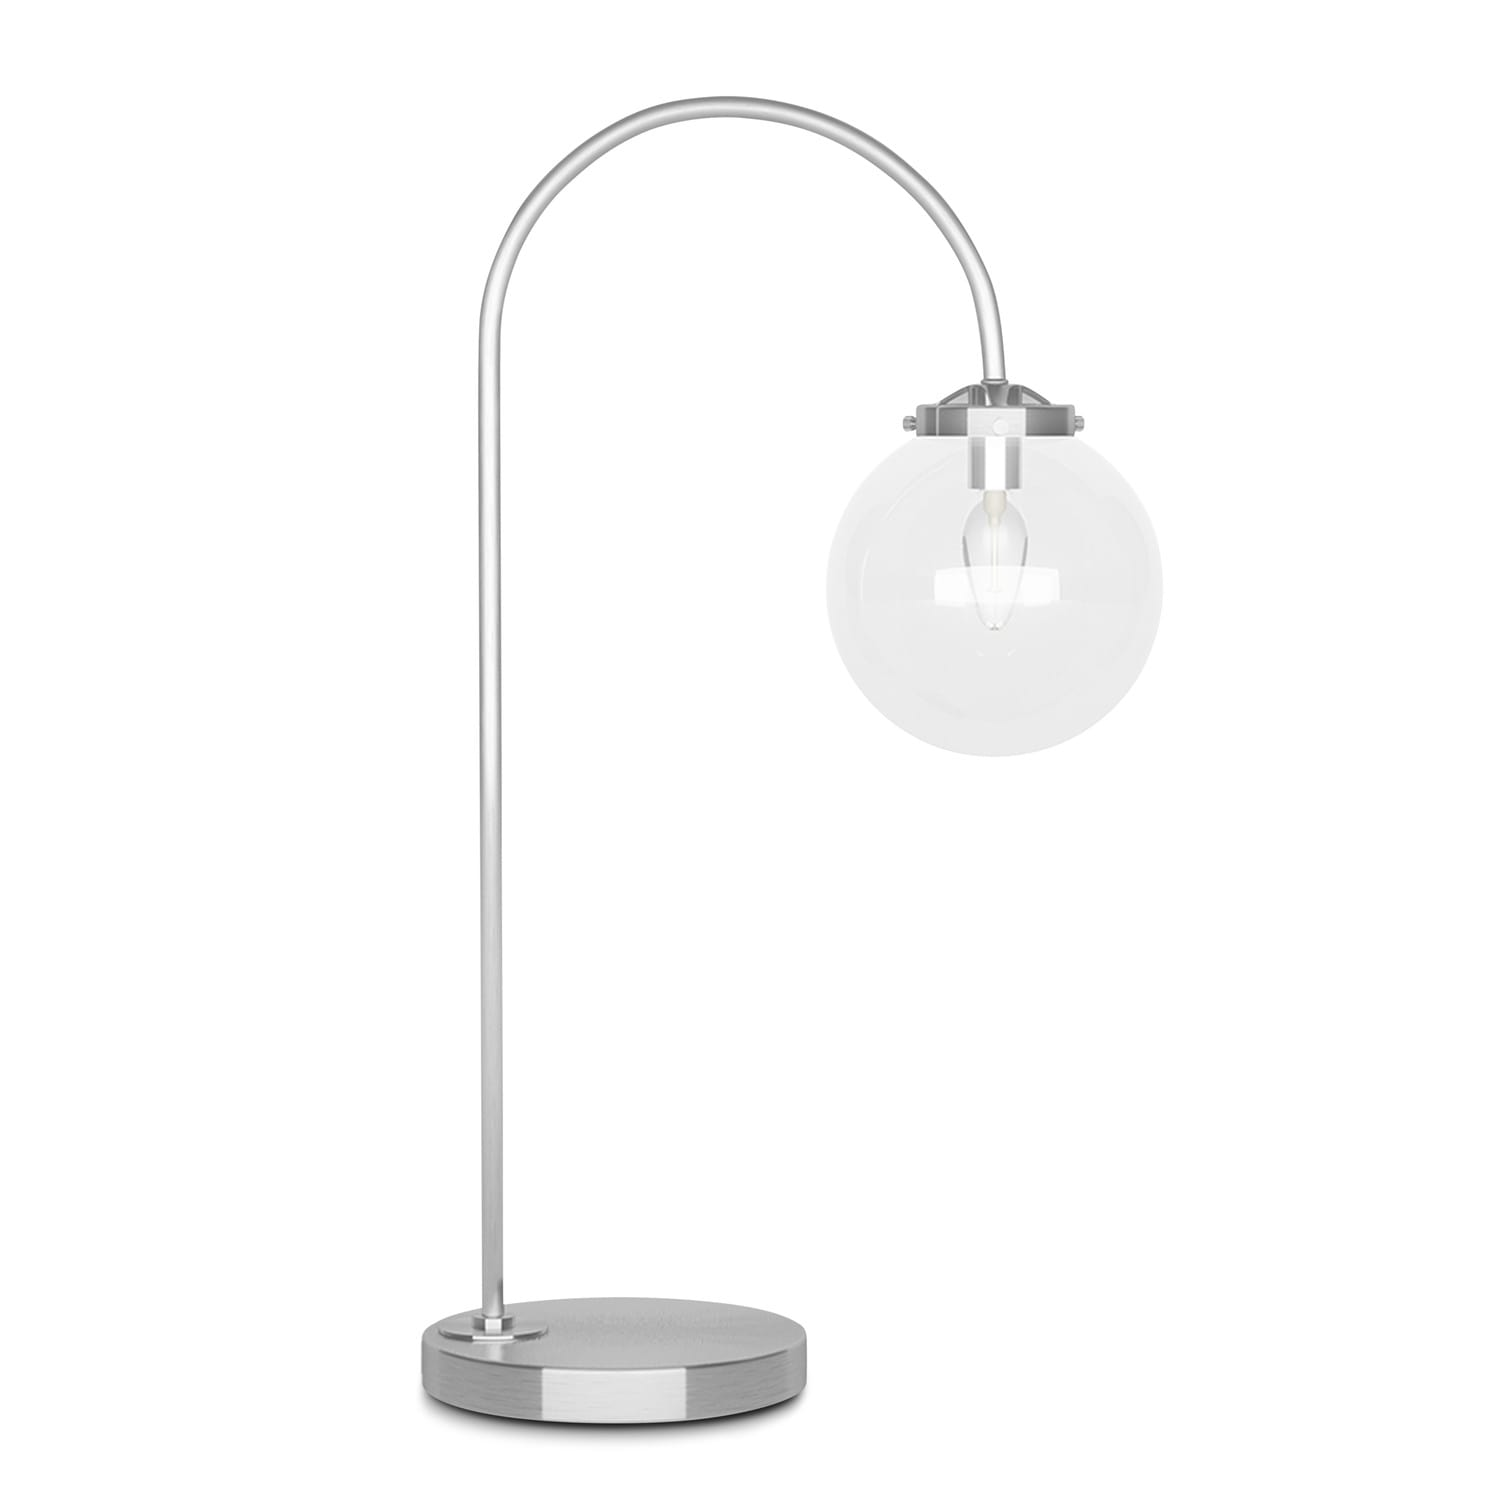 Home Accessories - Summit Lamp - Silver